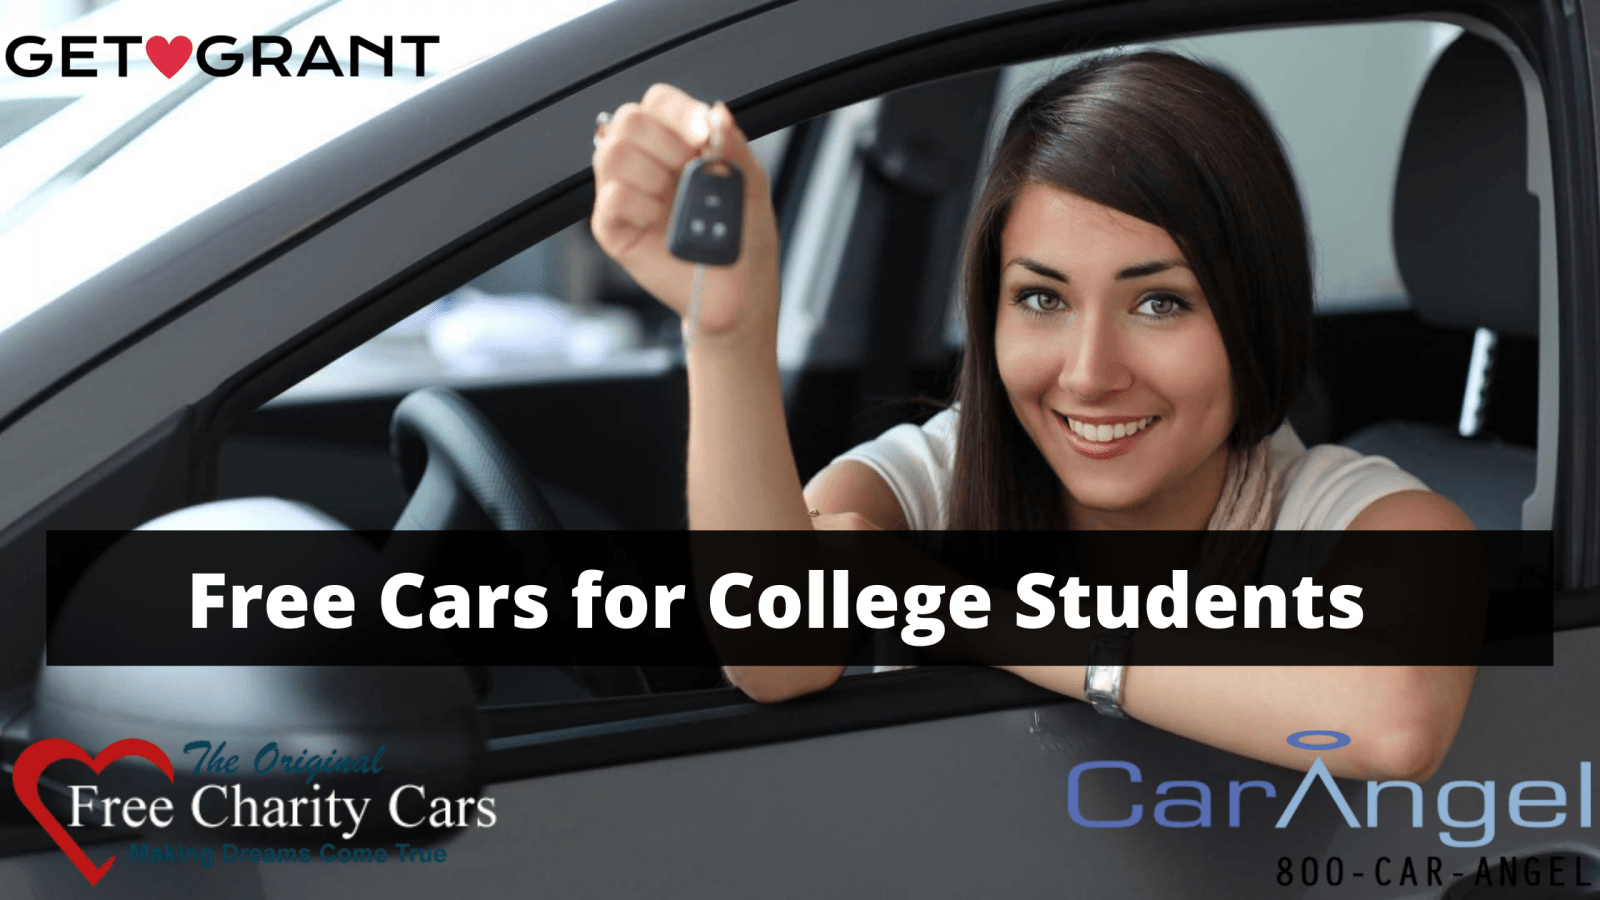 Free Cars for College Students